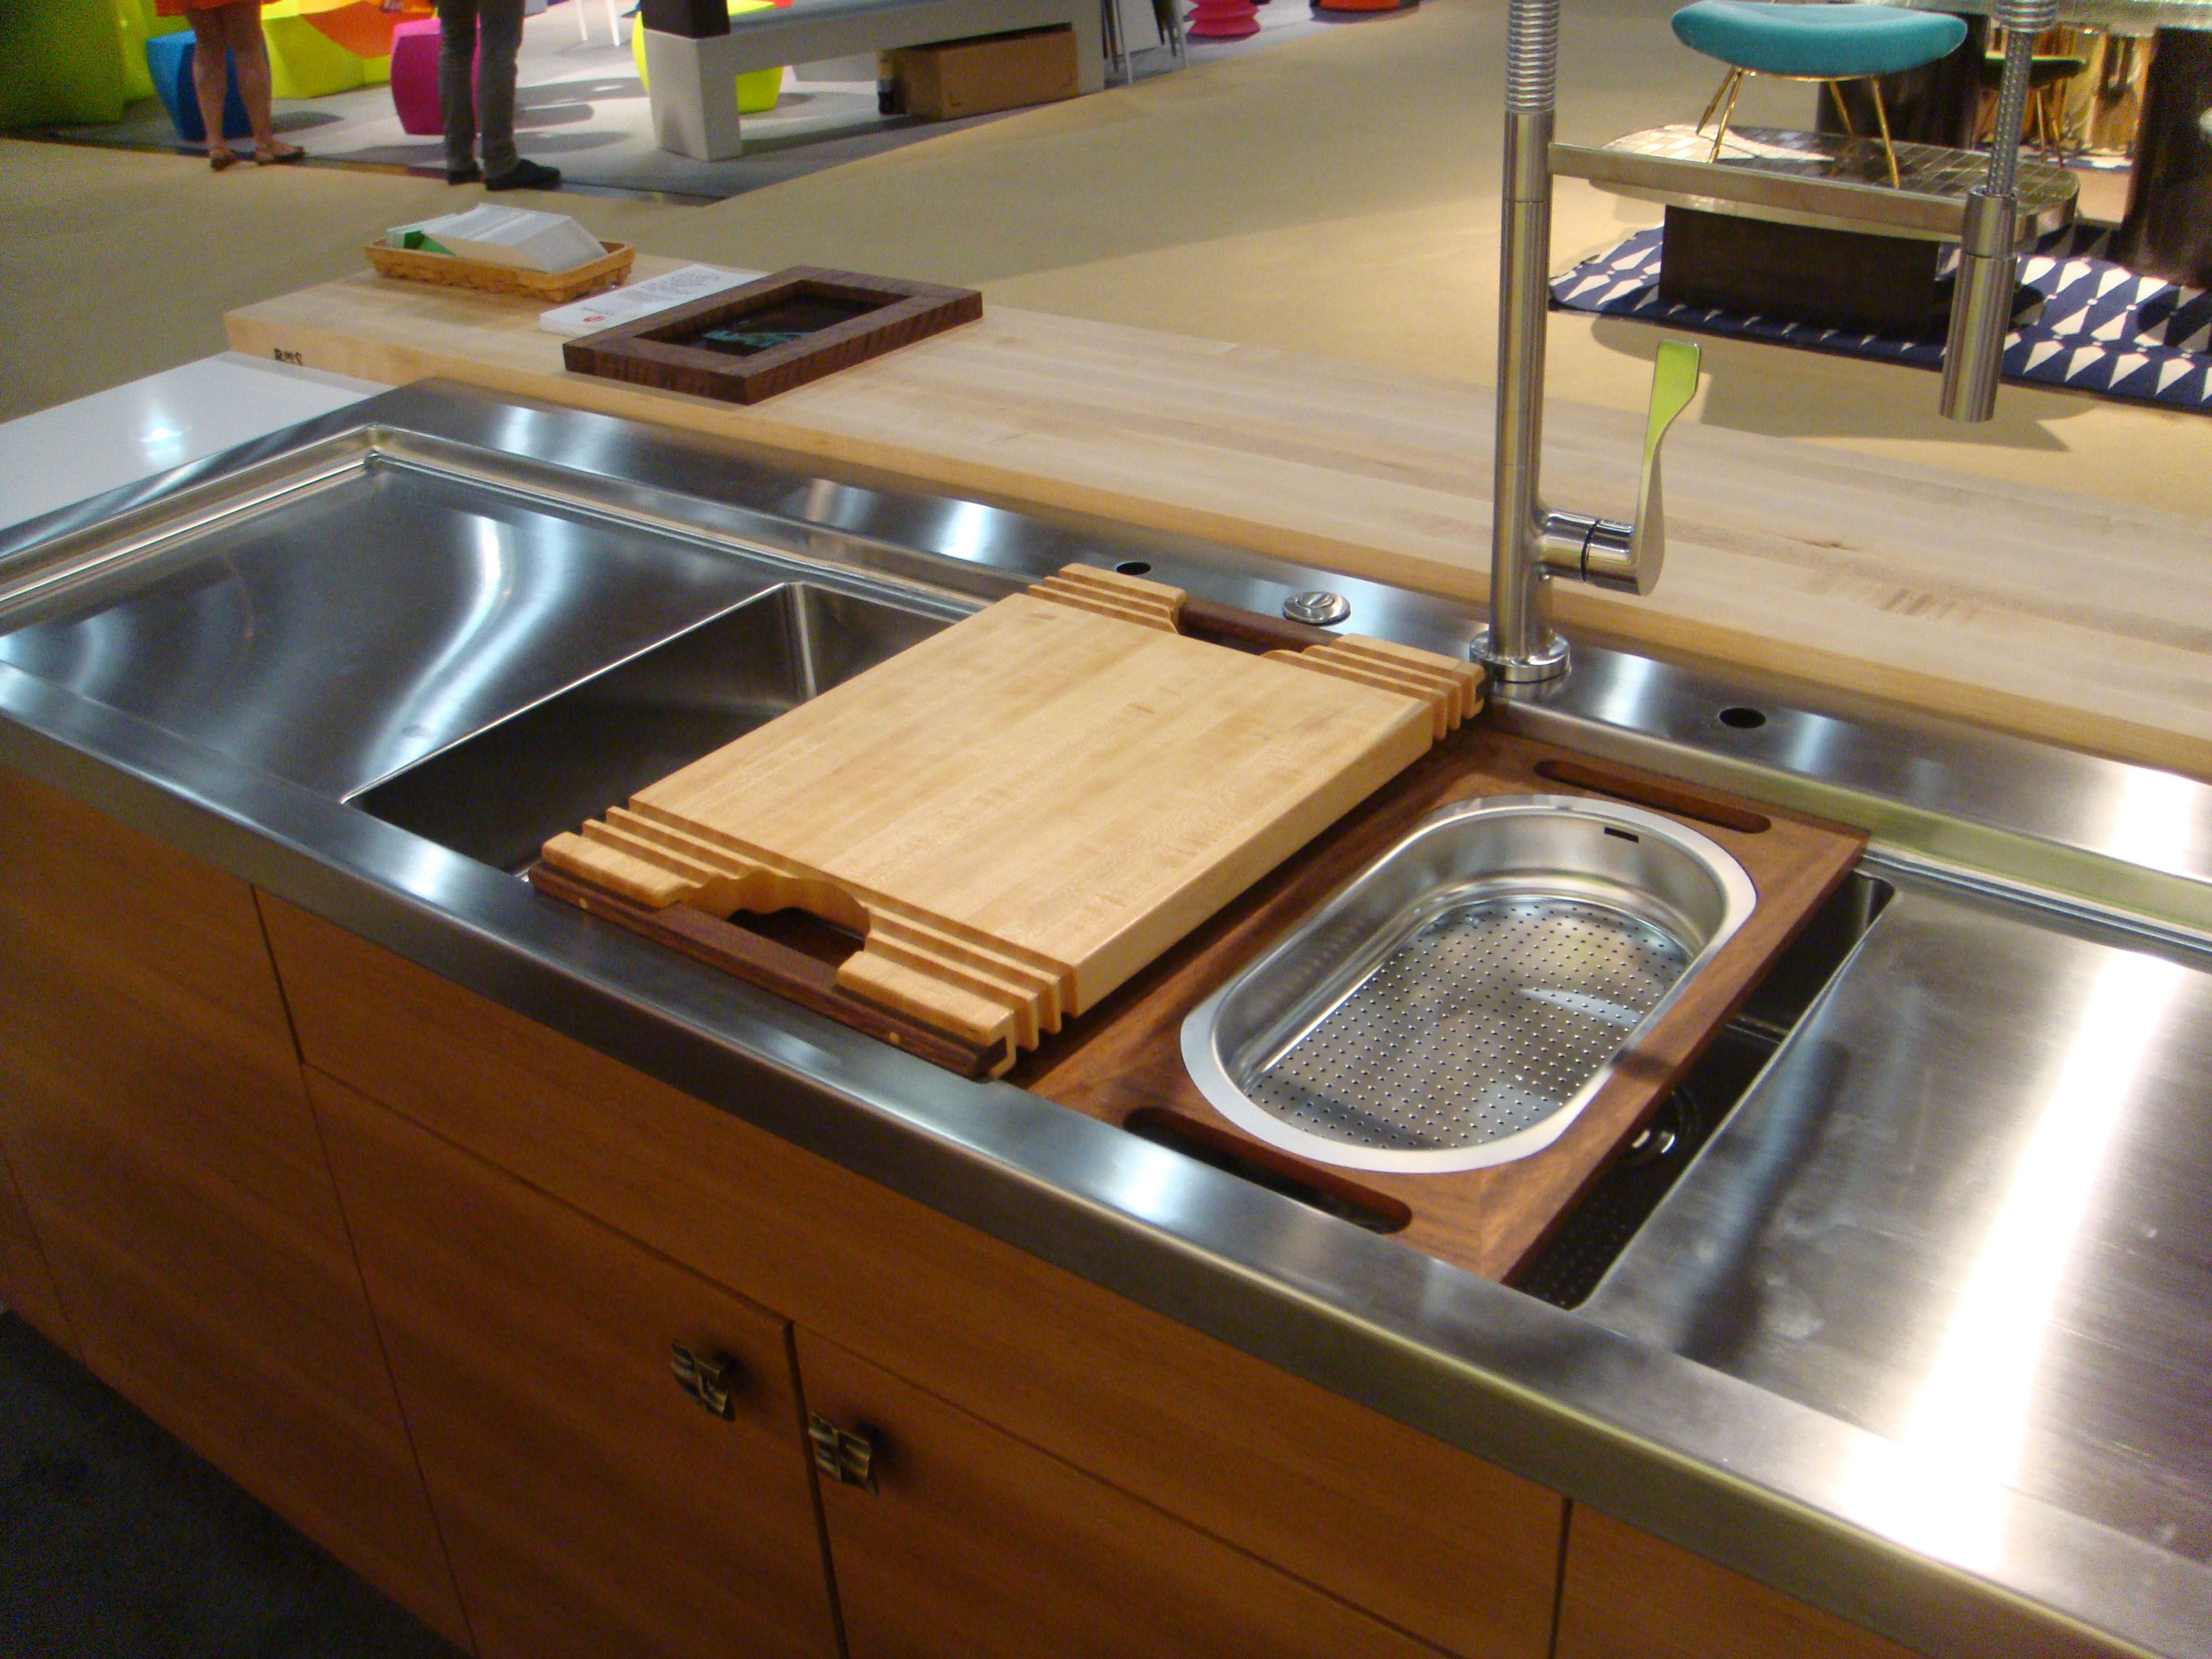 Stainless Steel Countertop With Integral Sink Sliding Cutting Board And Work Tray